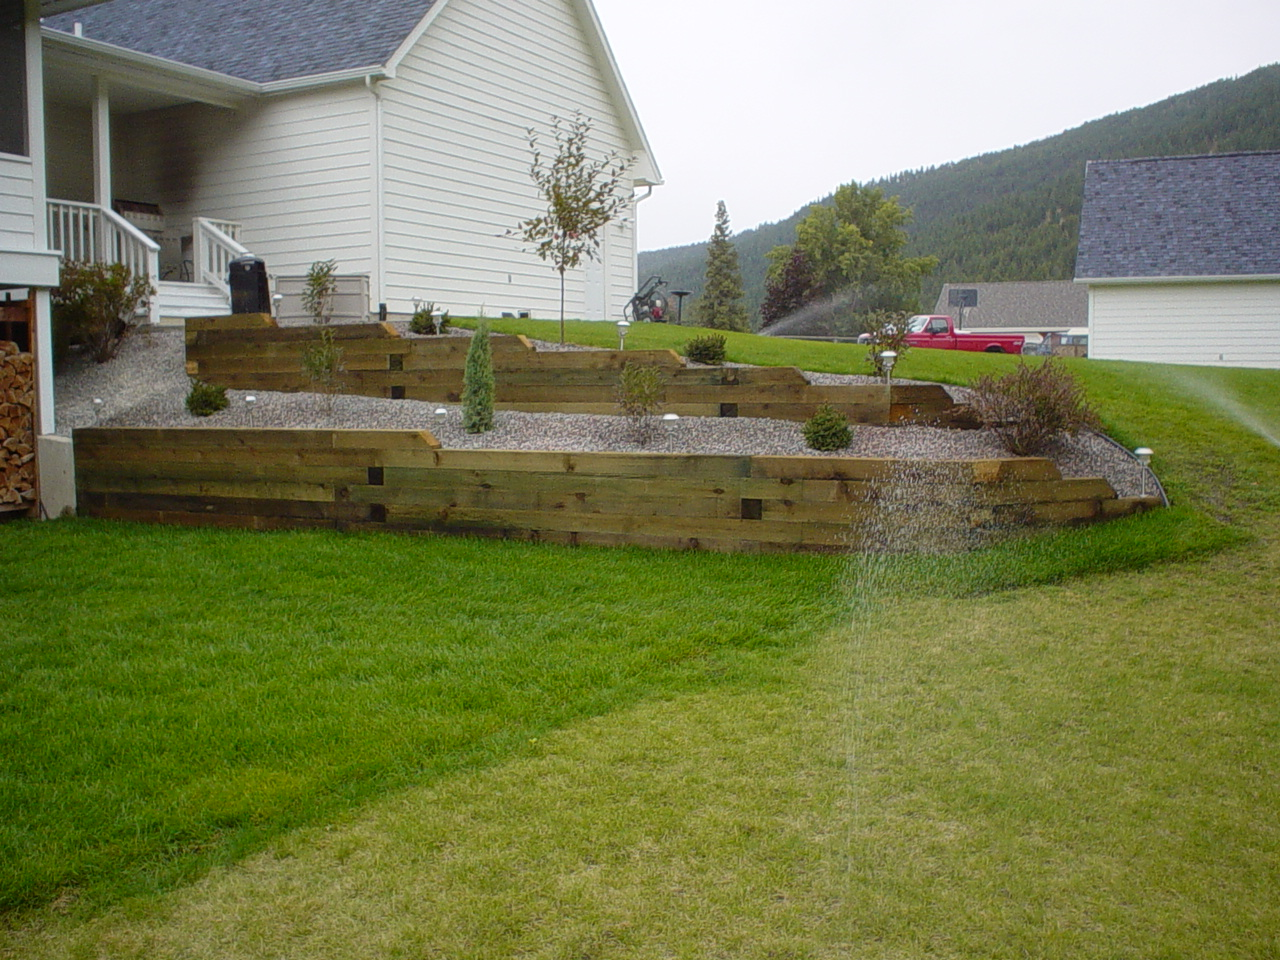 Sticks and stones gardens and landscape missoula mt for Sticks and stones landscaping